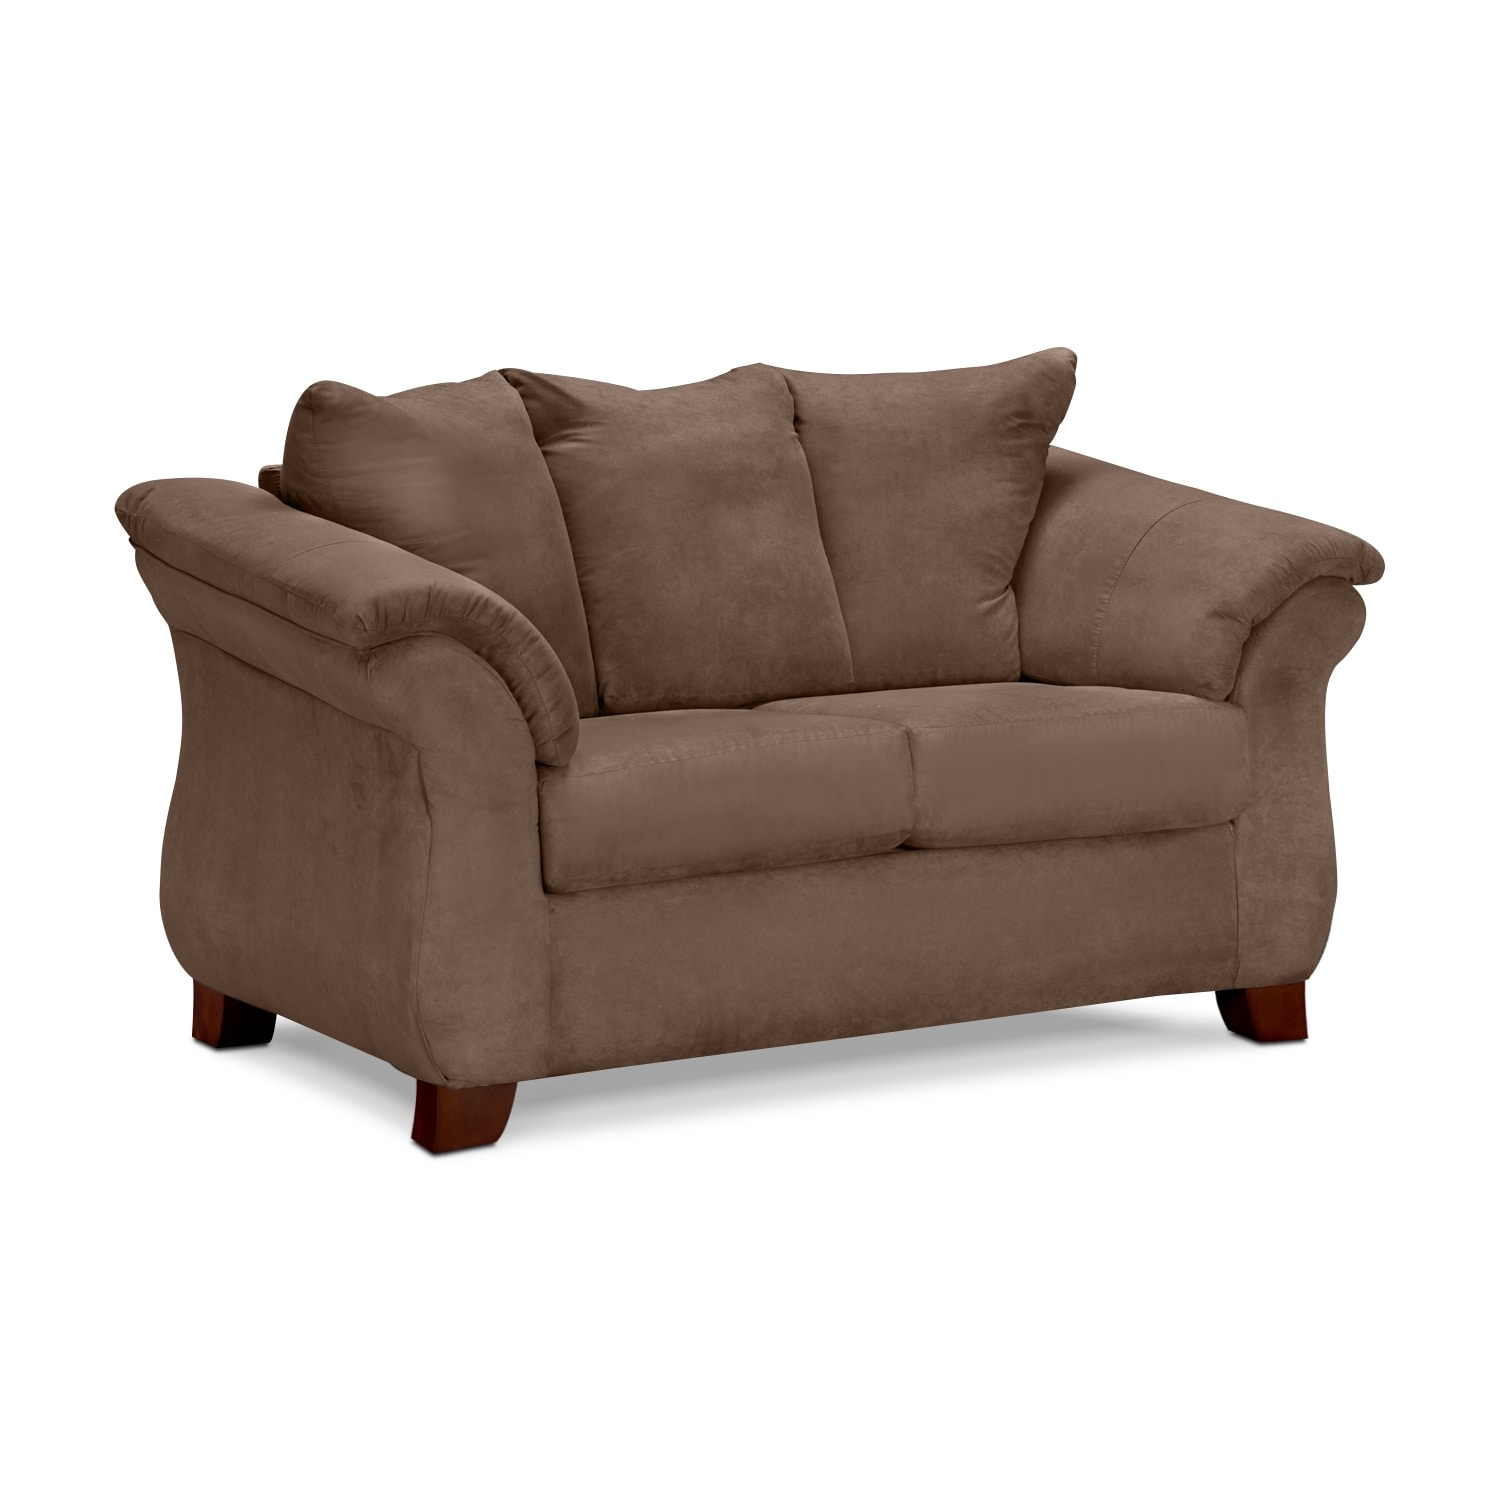 Living Room Furniture - Adrian Taupe Loveseat